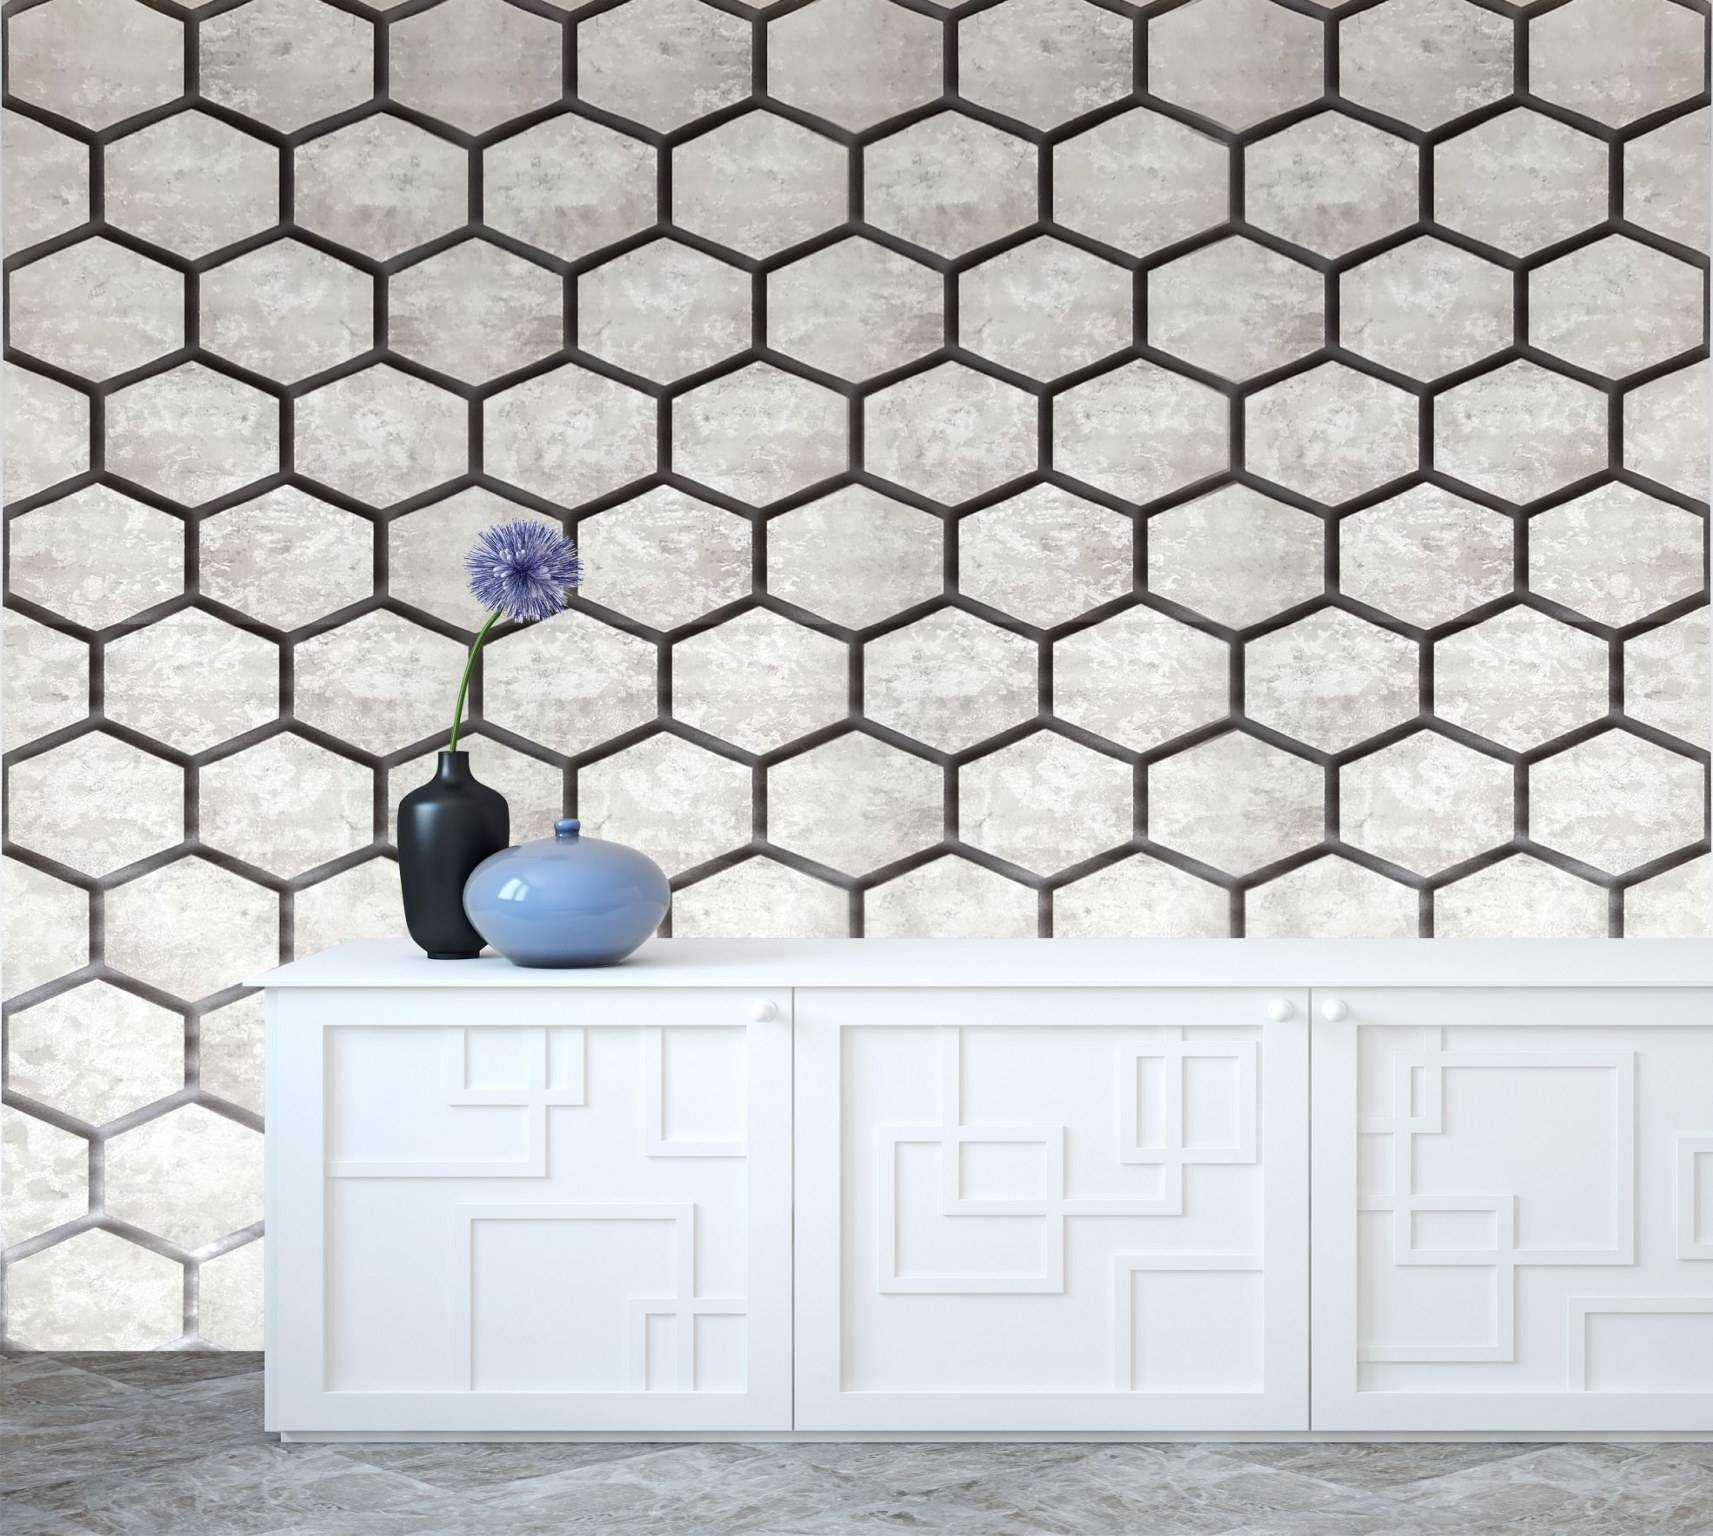 geometric tile patterns interior xpression vinyl geometric patterns wallpapers black of geometric tile patterns